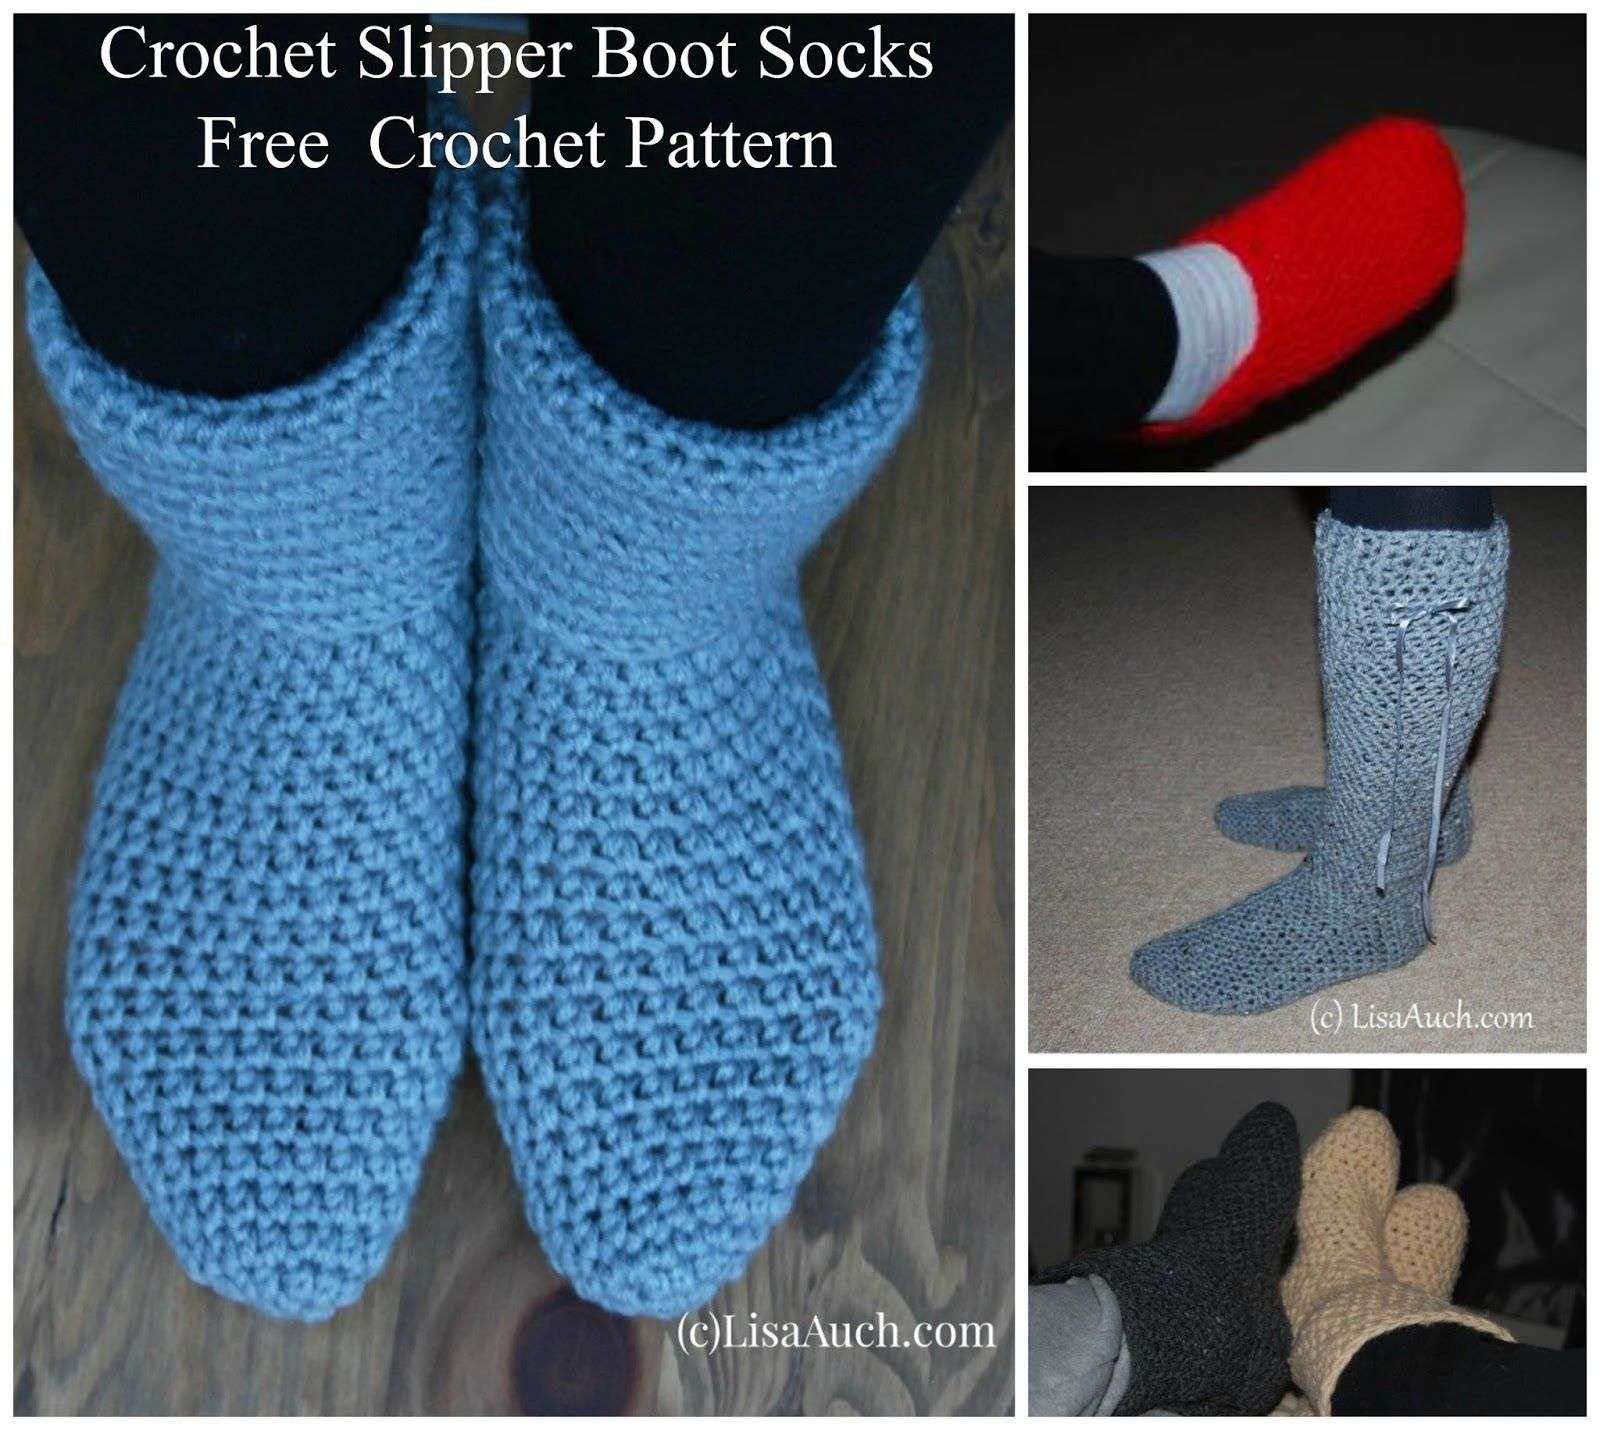 Easy free crochet slipper boot pattern free crochet slipper boot easy free crochet slipper boot pattern free crochet slipper boot pattern men woman bankloansurffo Image collections